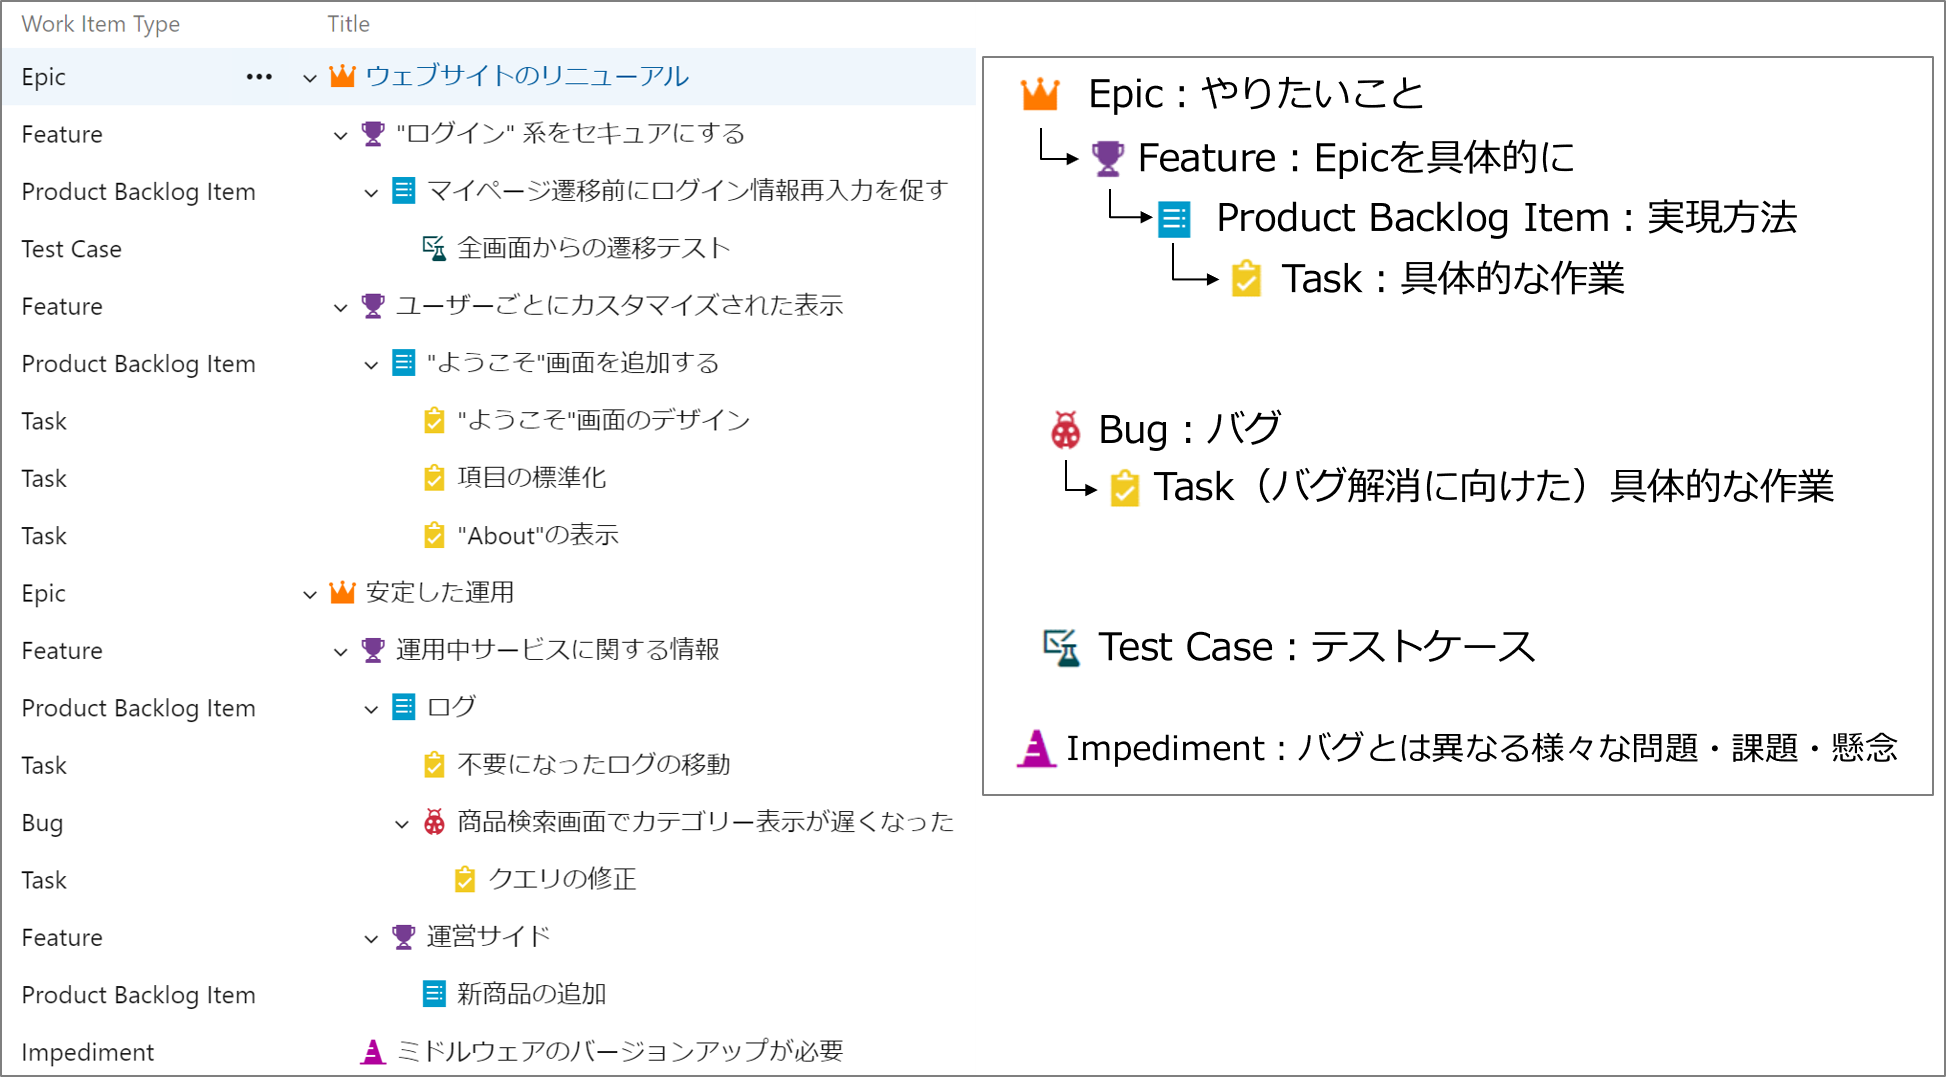 20190621-1-5.png